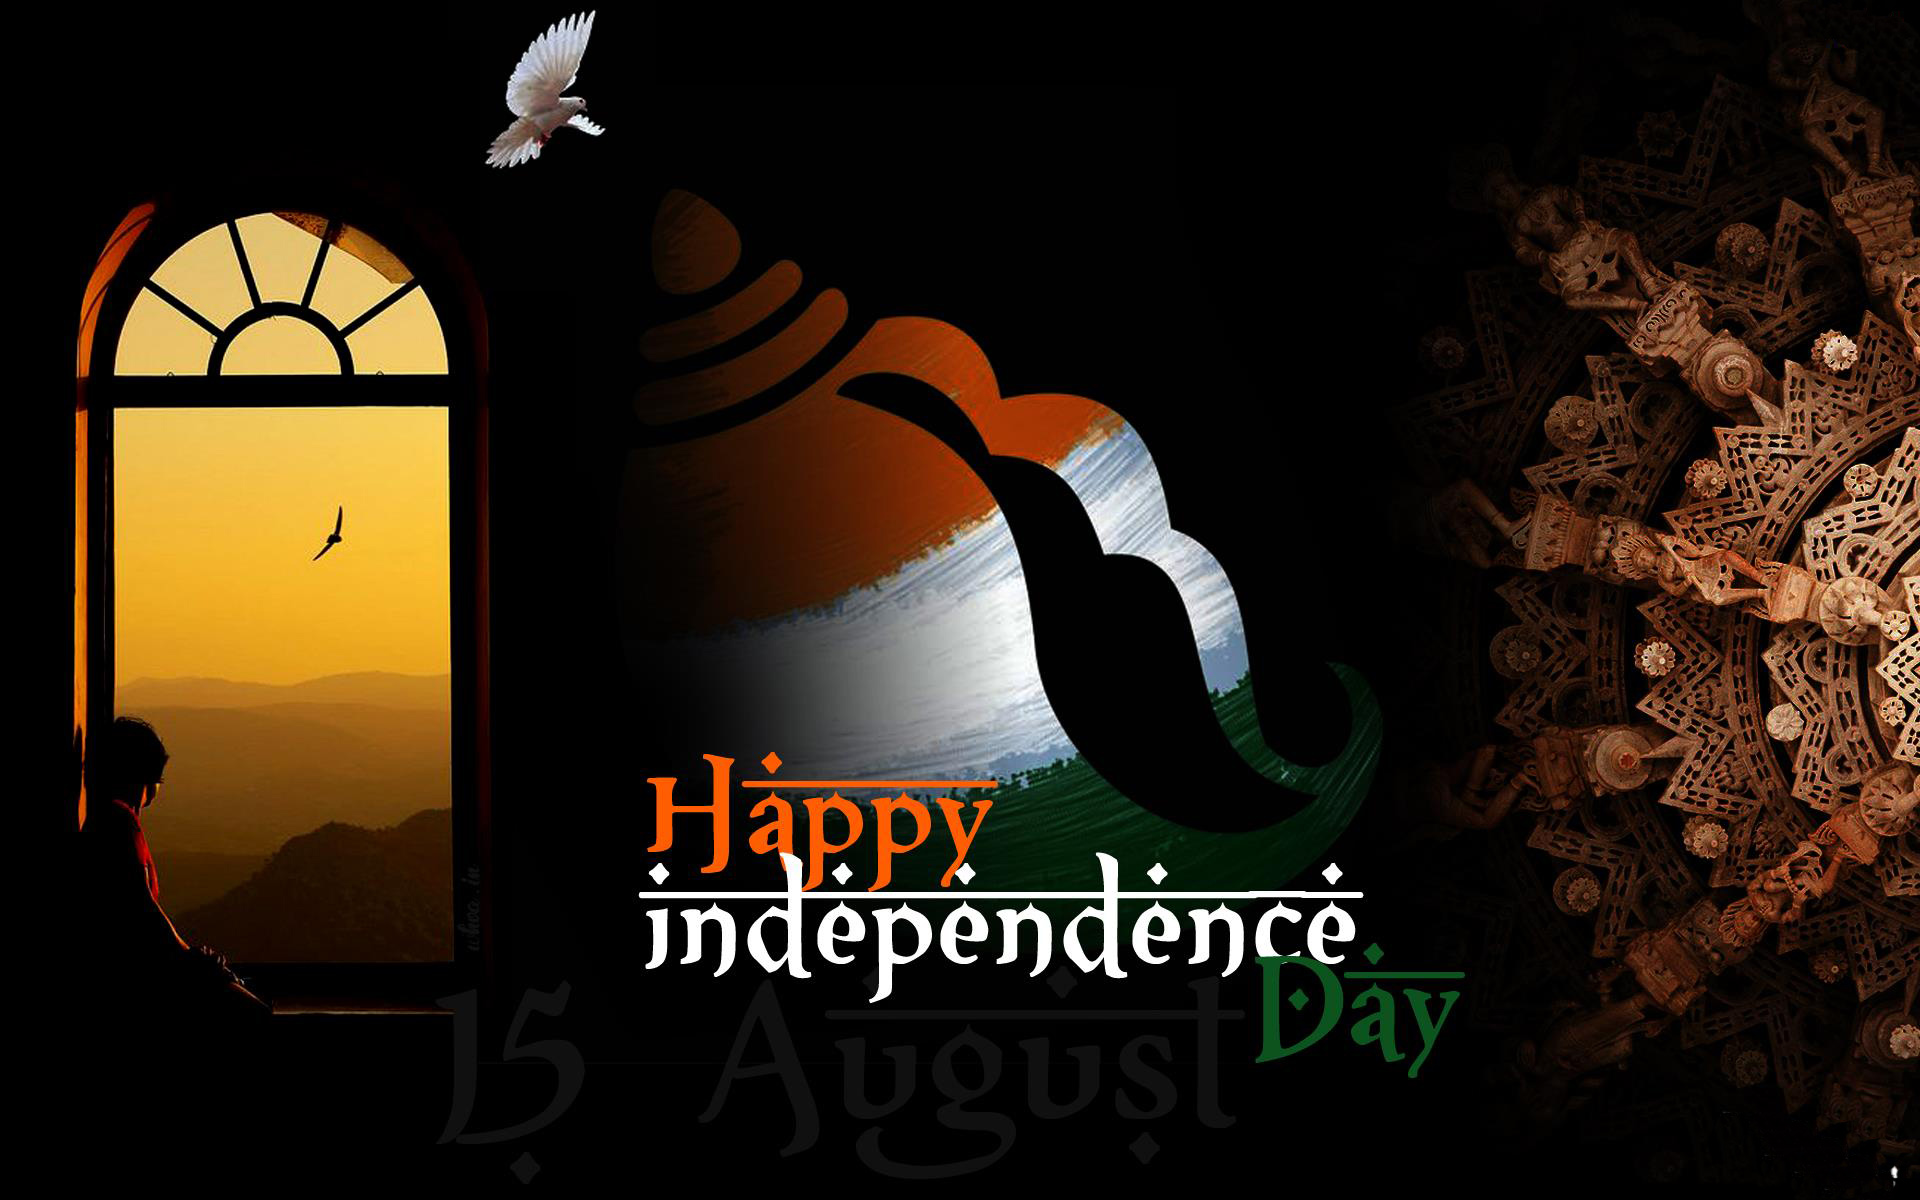 HD Wallpapers For Independence Day